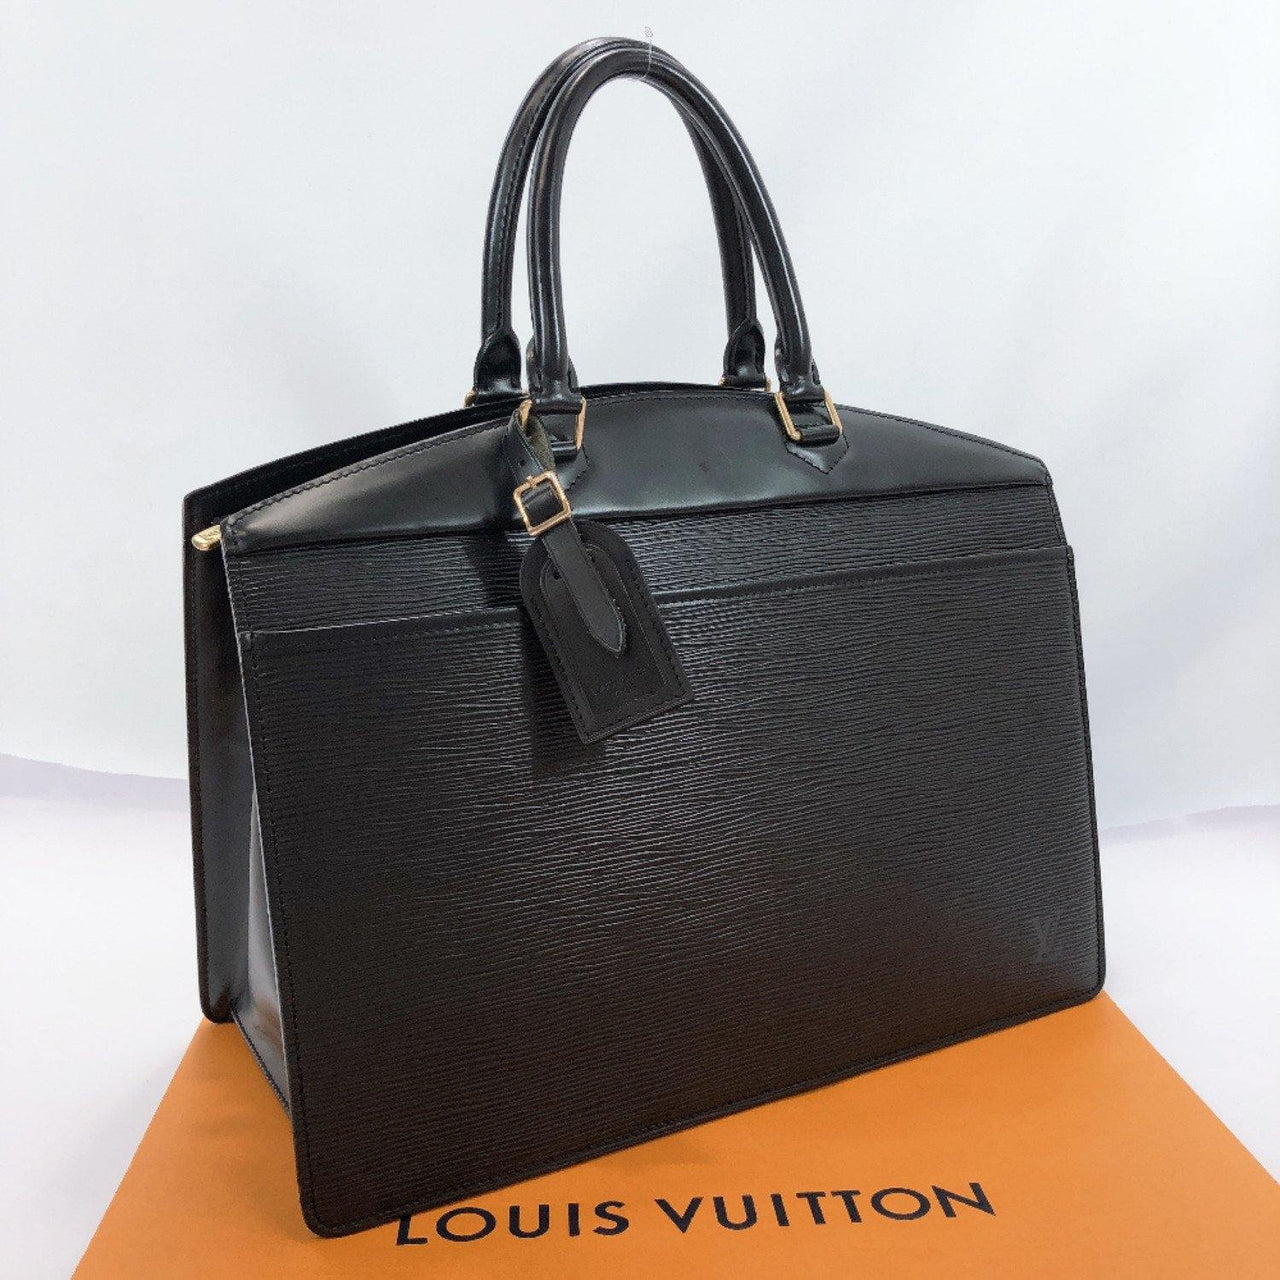 LOUIS VUITTON Handbag M48182 Riviera Epi Leather black Women Used